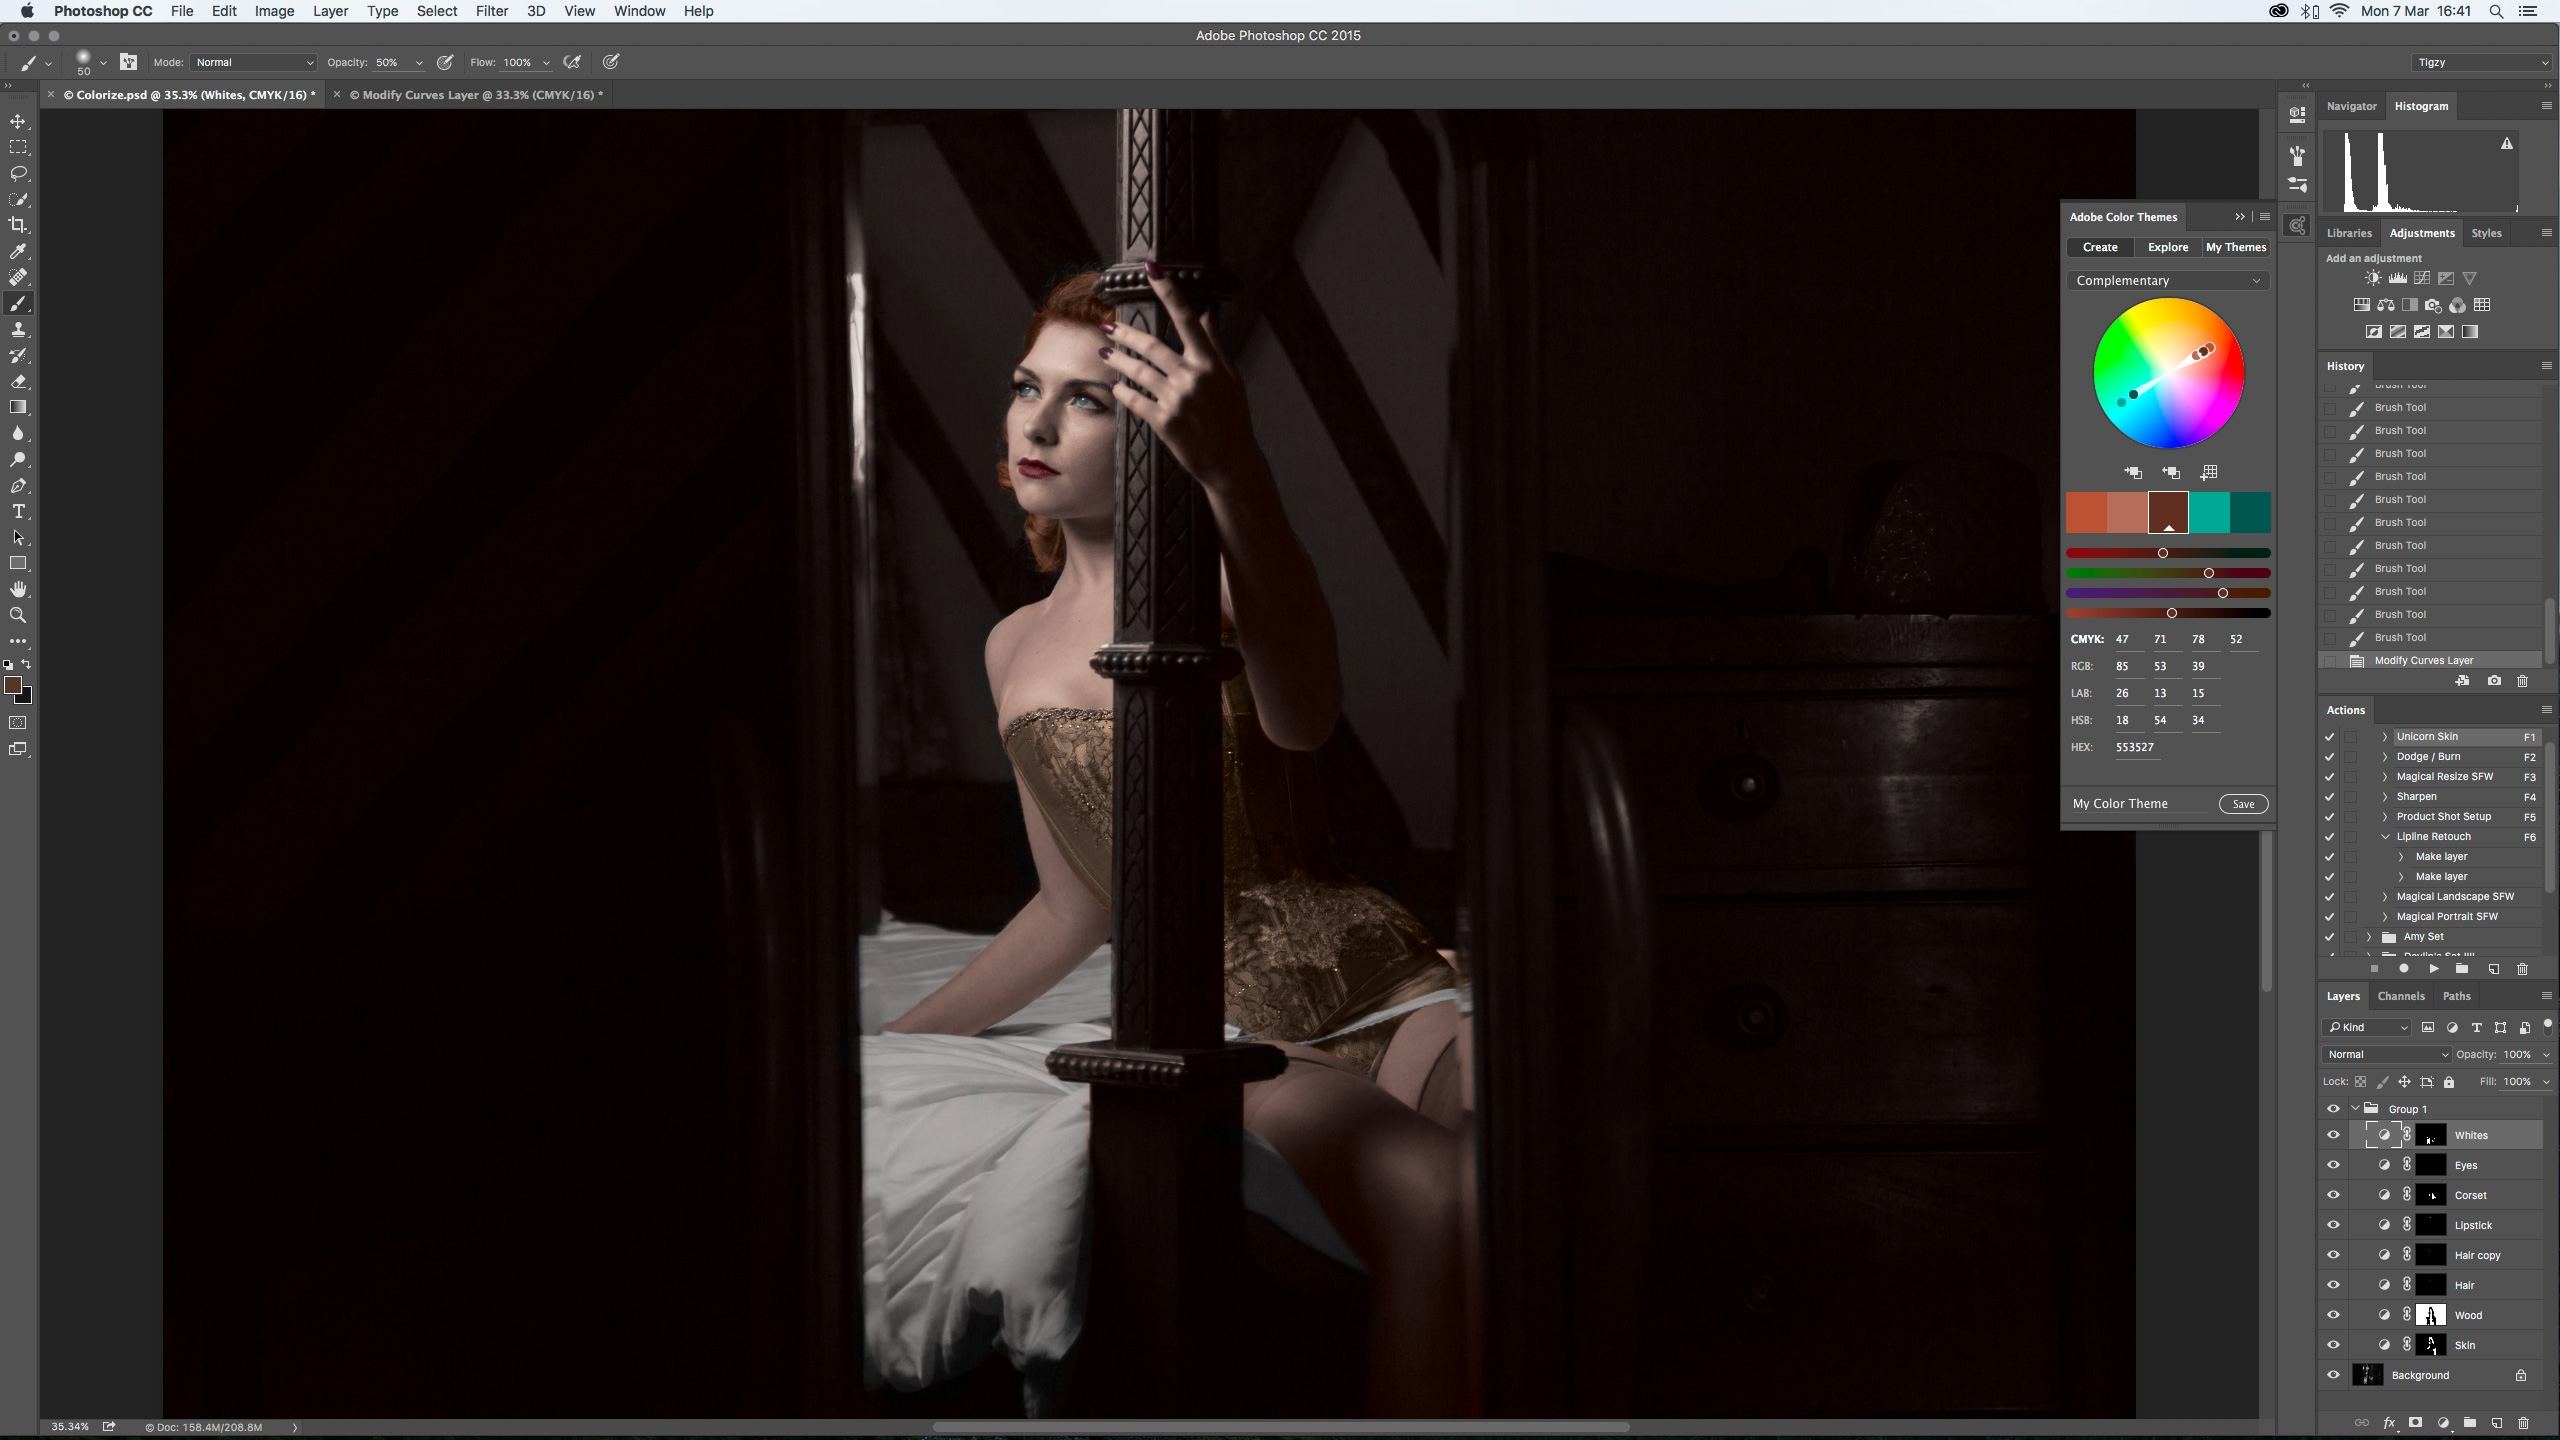 Blending Modes In Adobe Photoshop